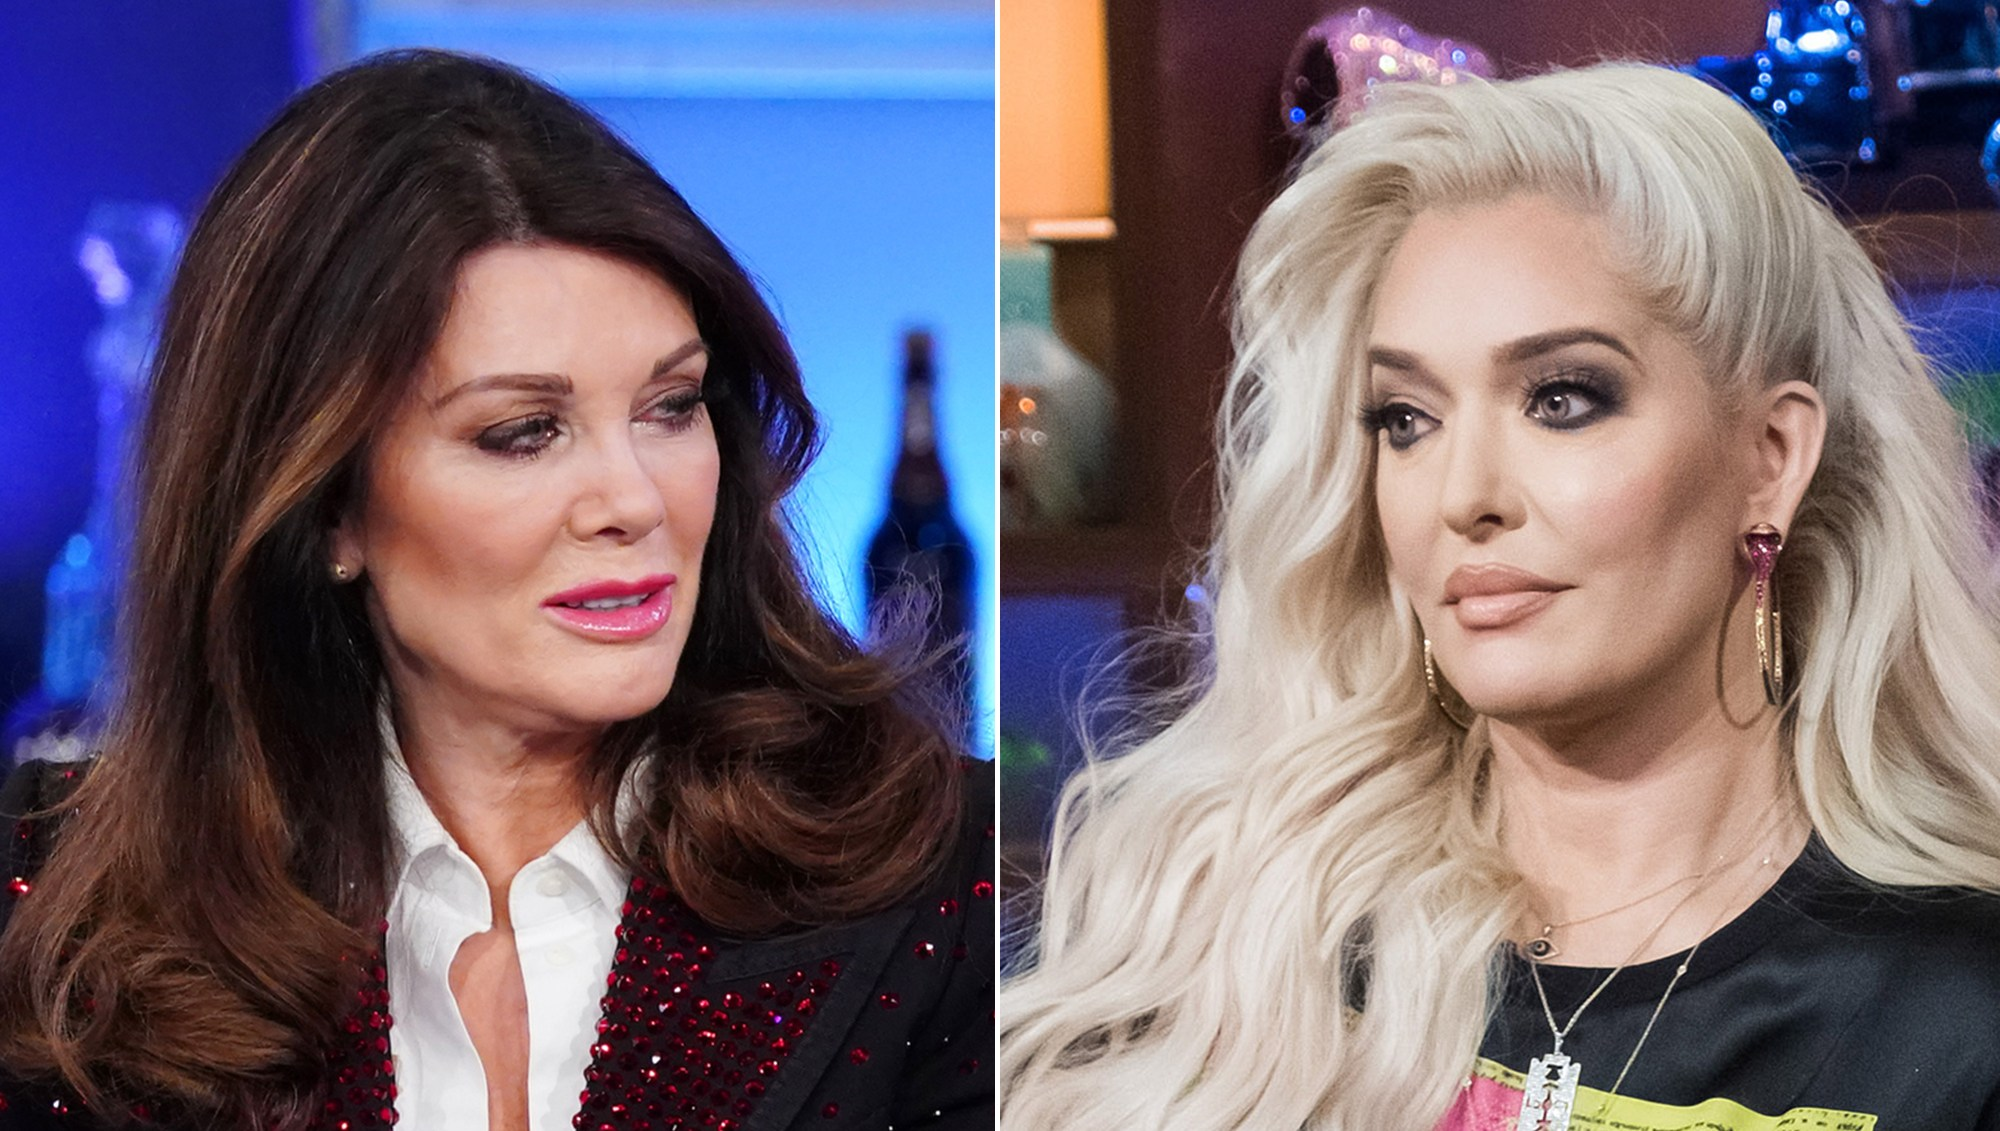 Lisa Vanderpump Apologizes for Anti-Transgender Comment About Erika Jayne